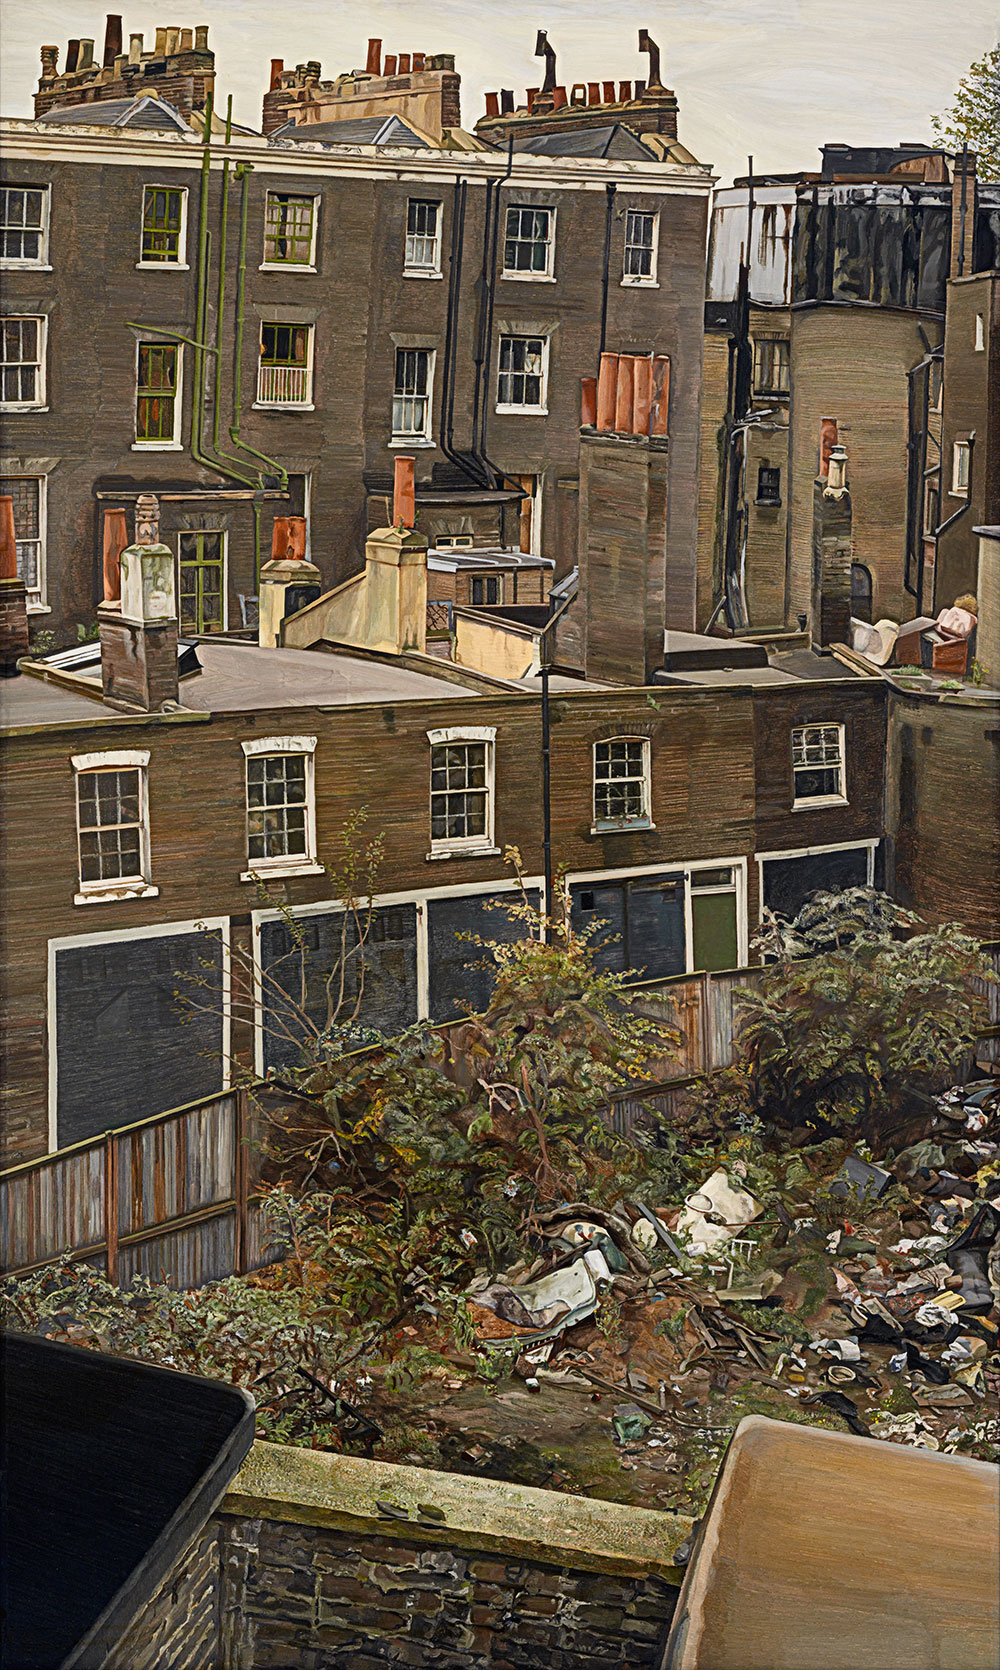 Lucian Freud, Wasteground with Houses, Paddington, 1970–2, oil on canvas, 167 × 101 cm, 65¾ × 39¾ in. © The Lucian Freud Archive / Bridgeman Images; photography by John Riddy (volume 1, page 285)